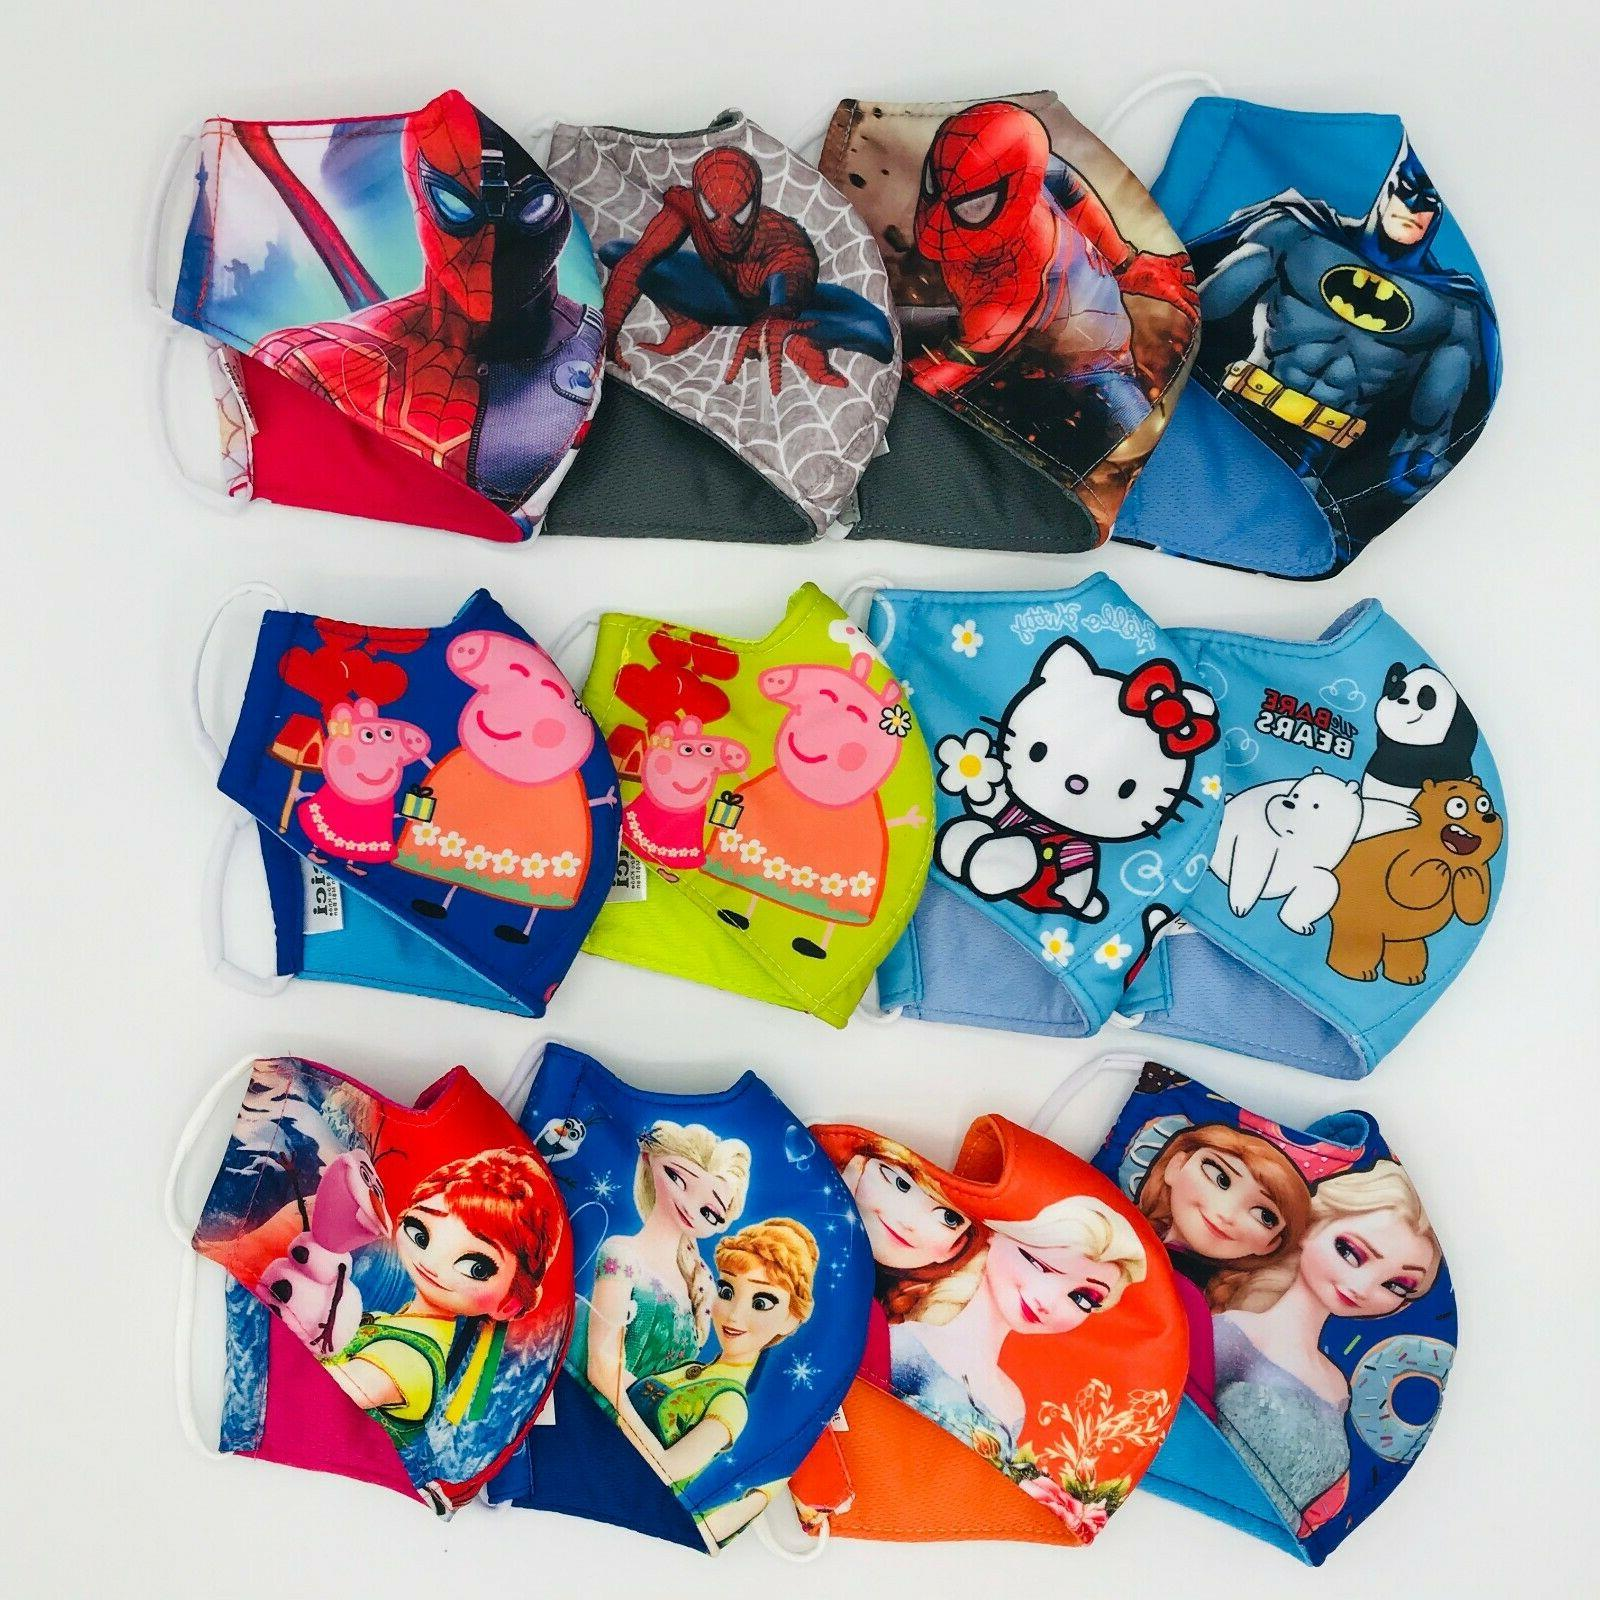 2/3 Mask Polyester Fabric 3-Fly Washable